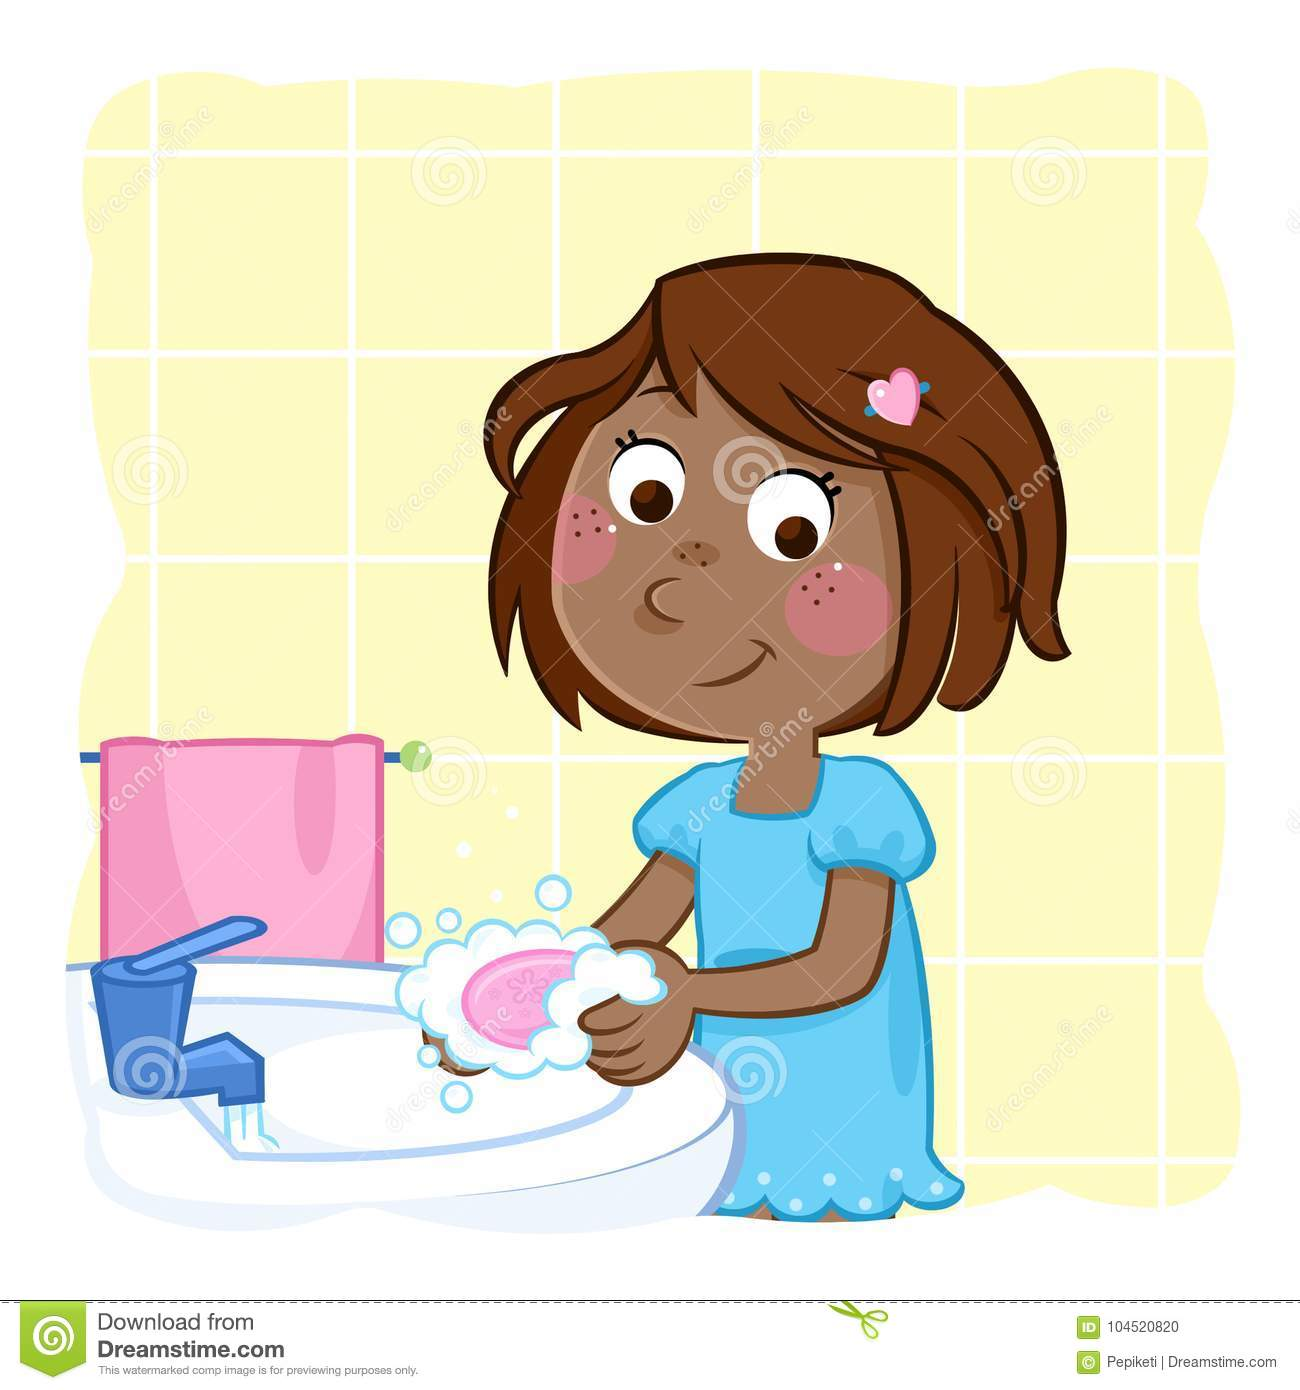 Cute little black girl washing hands with pink soap